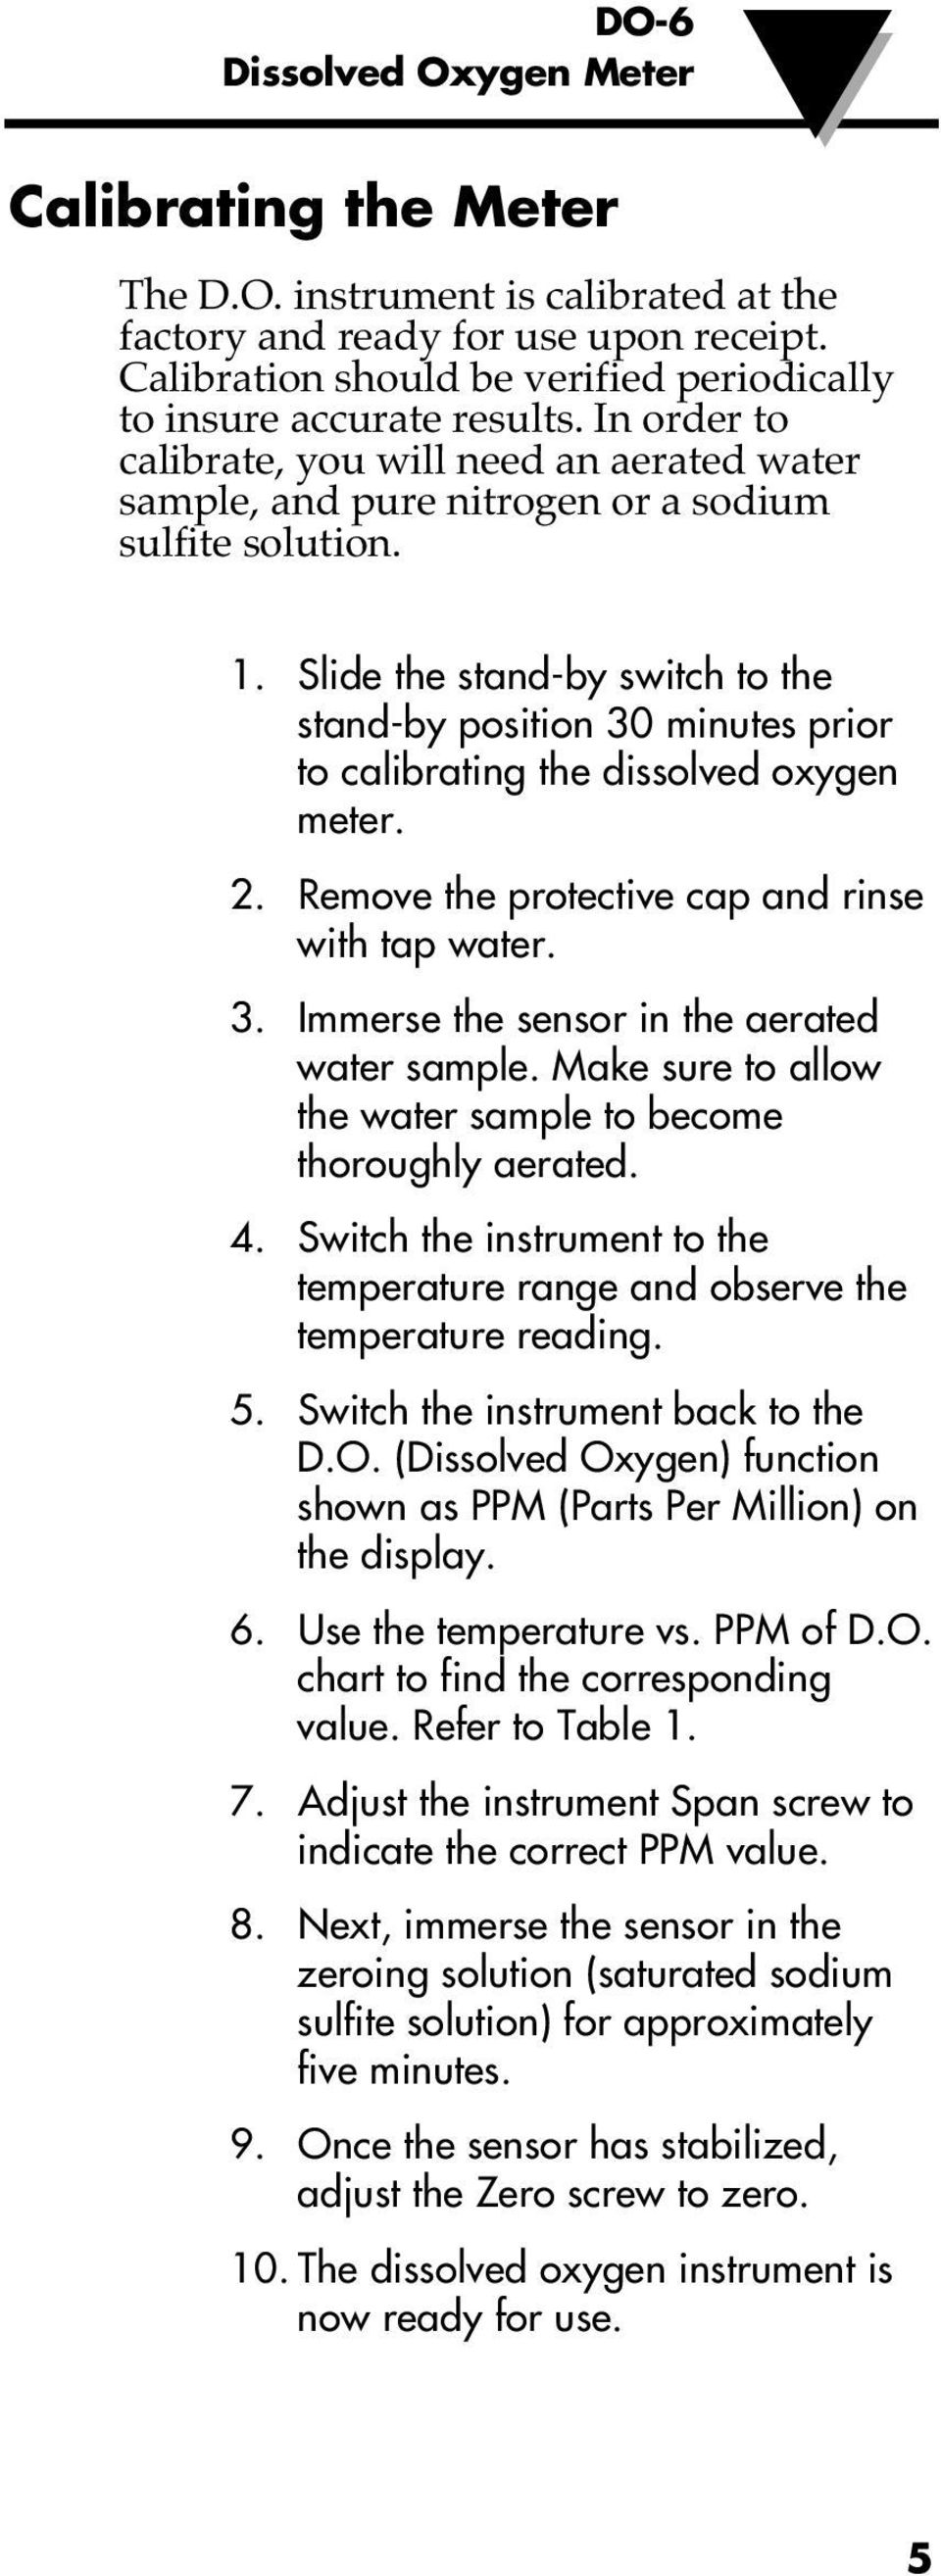 Slide the stand-by switch to the stand-by position 30 minutes prior to calibrating the dissolved oxygen meter. 2. Remove the protective cap and rinse with tap water. 3. Immerse the sensor in the aerated water sample.